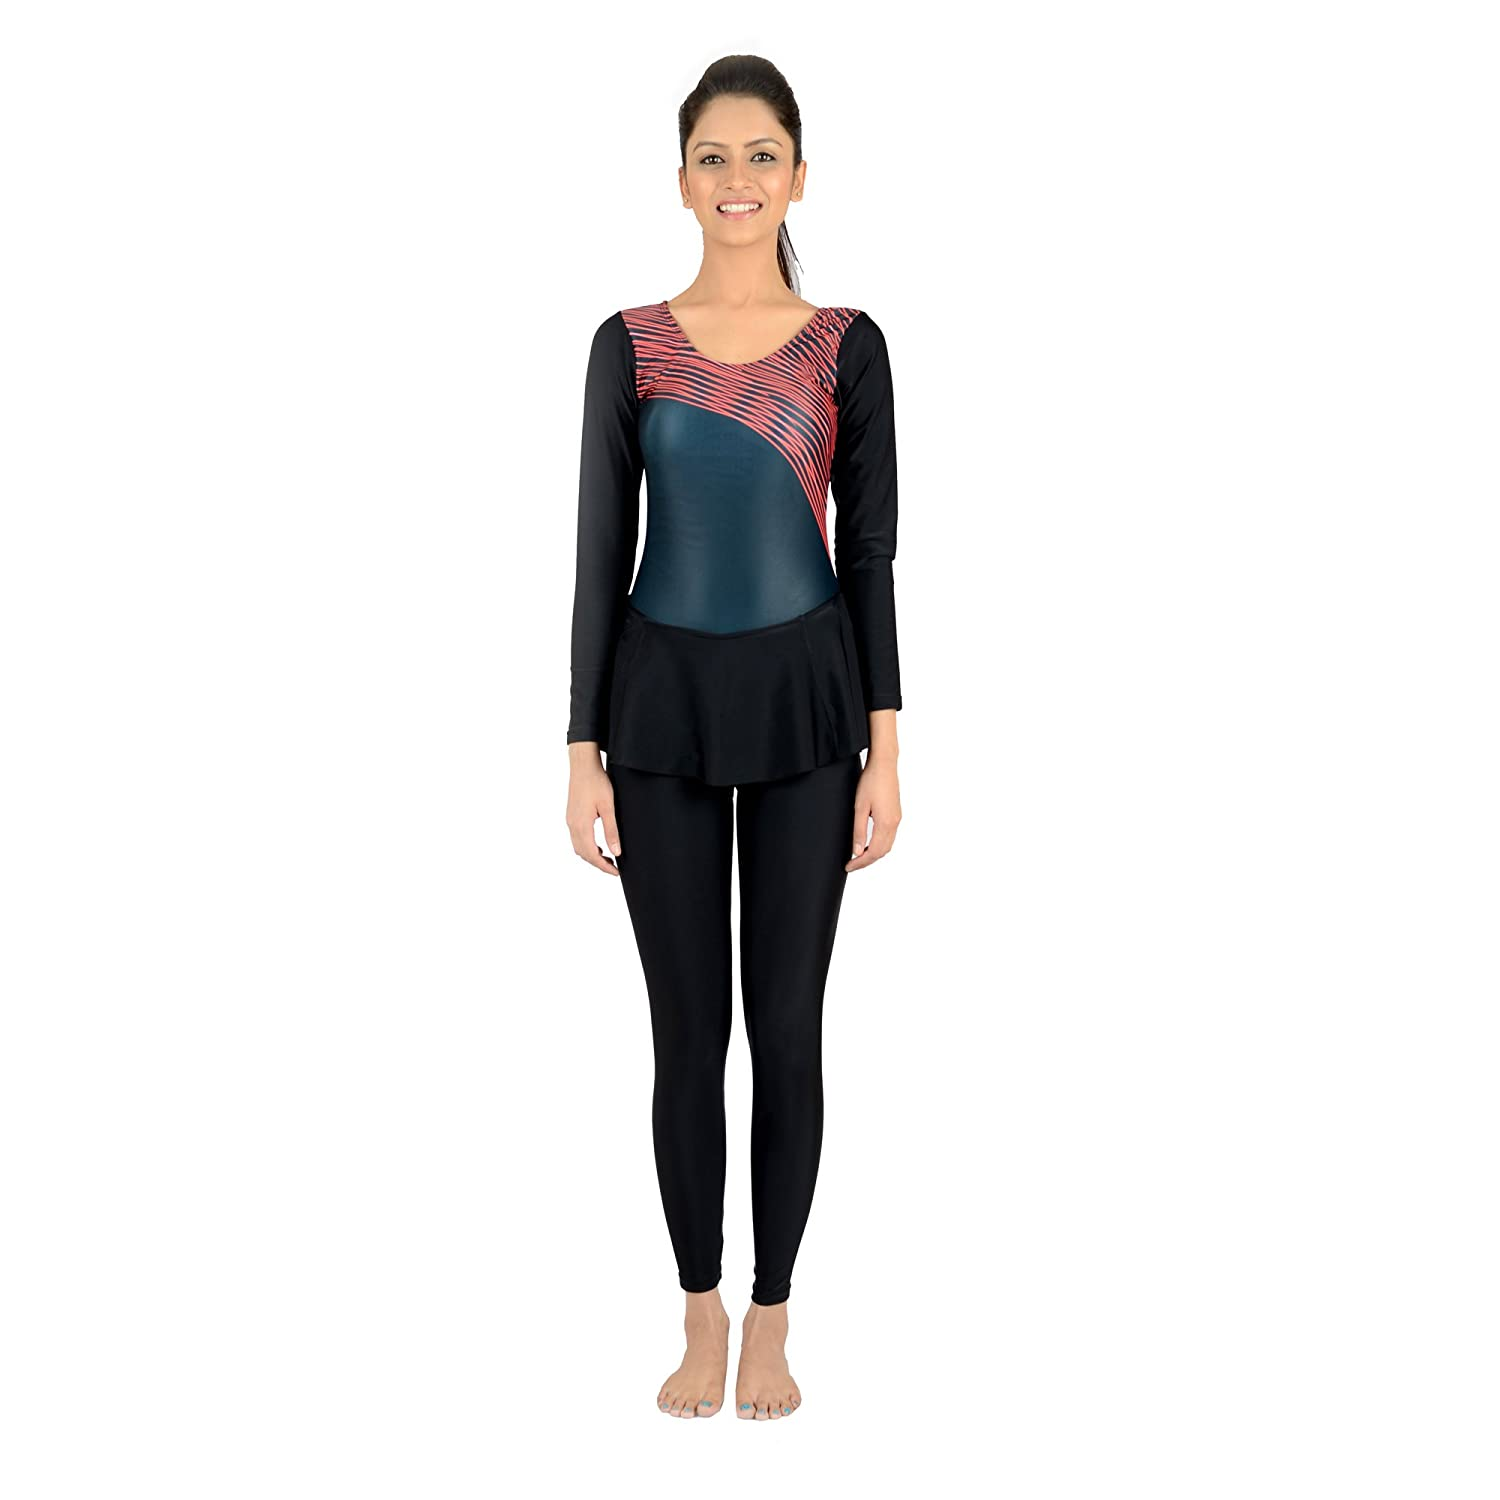 e93d0c260c Buy Veloz Women Swim Wear - Frock [Full Sleeves- Full Length] | Xtralife  Lycra | DTS Print (with Pads) - 0E Red Online at Low Prices in India -  Amazon.in